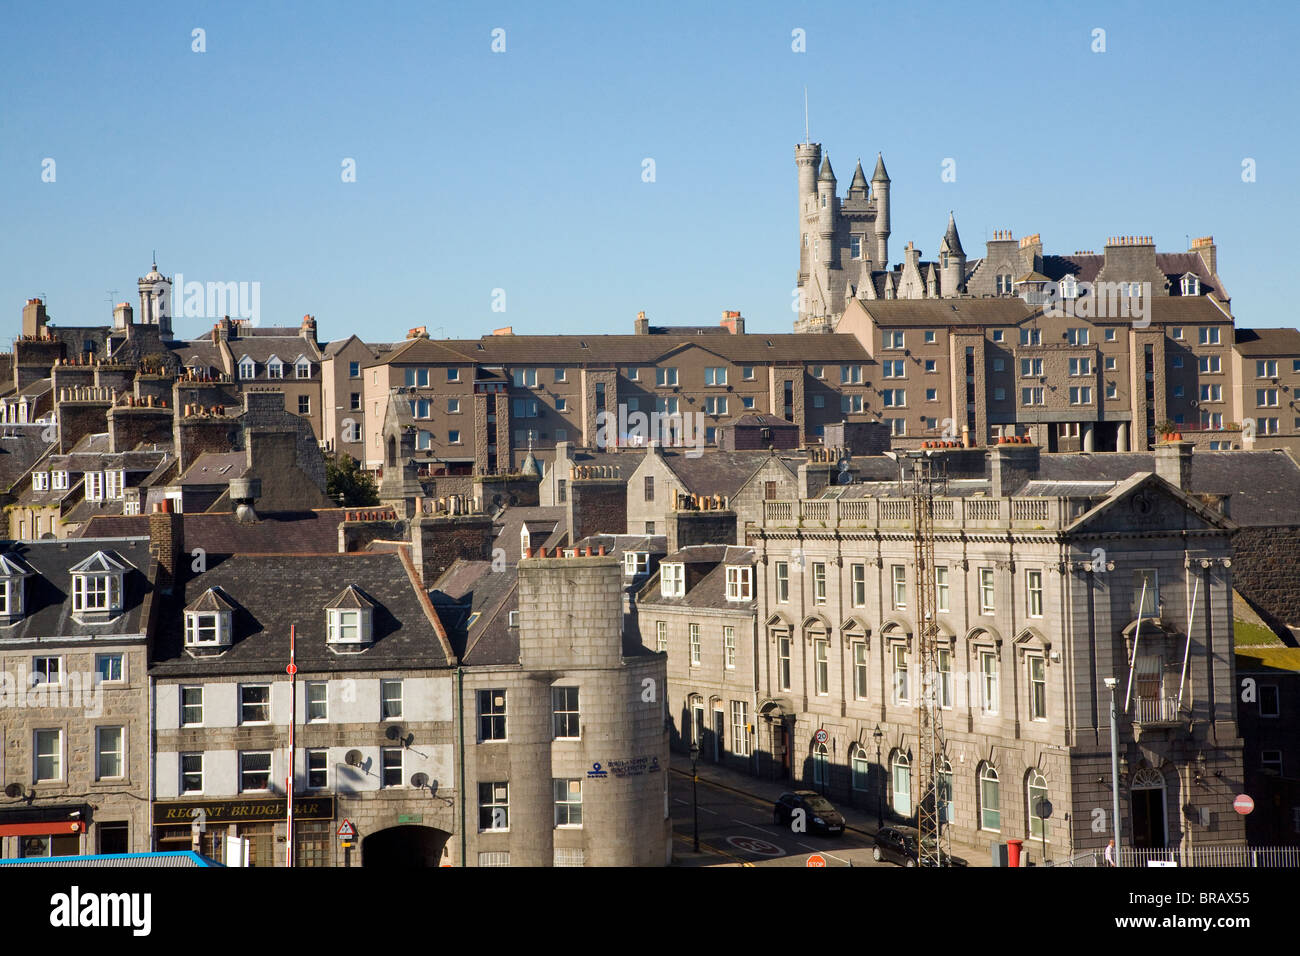 View from docks over central buildings Aberdeen, Scotland - Stock Image